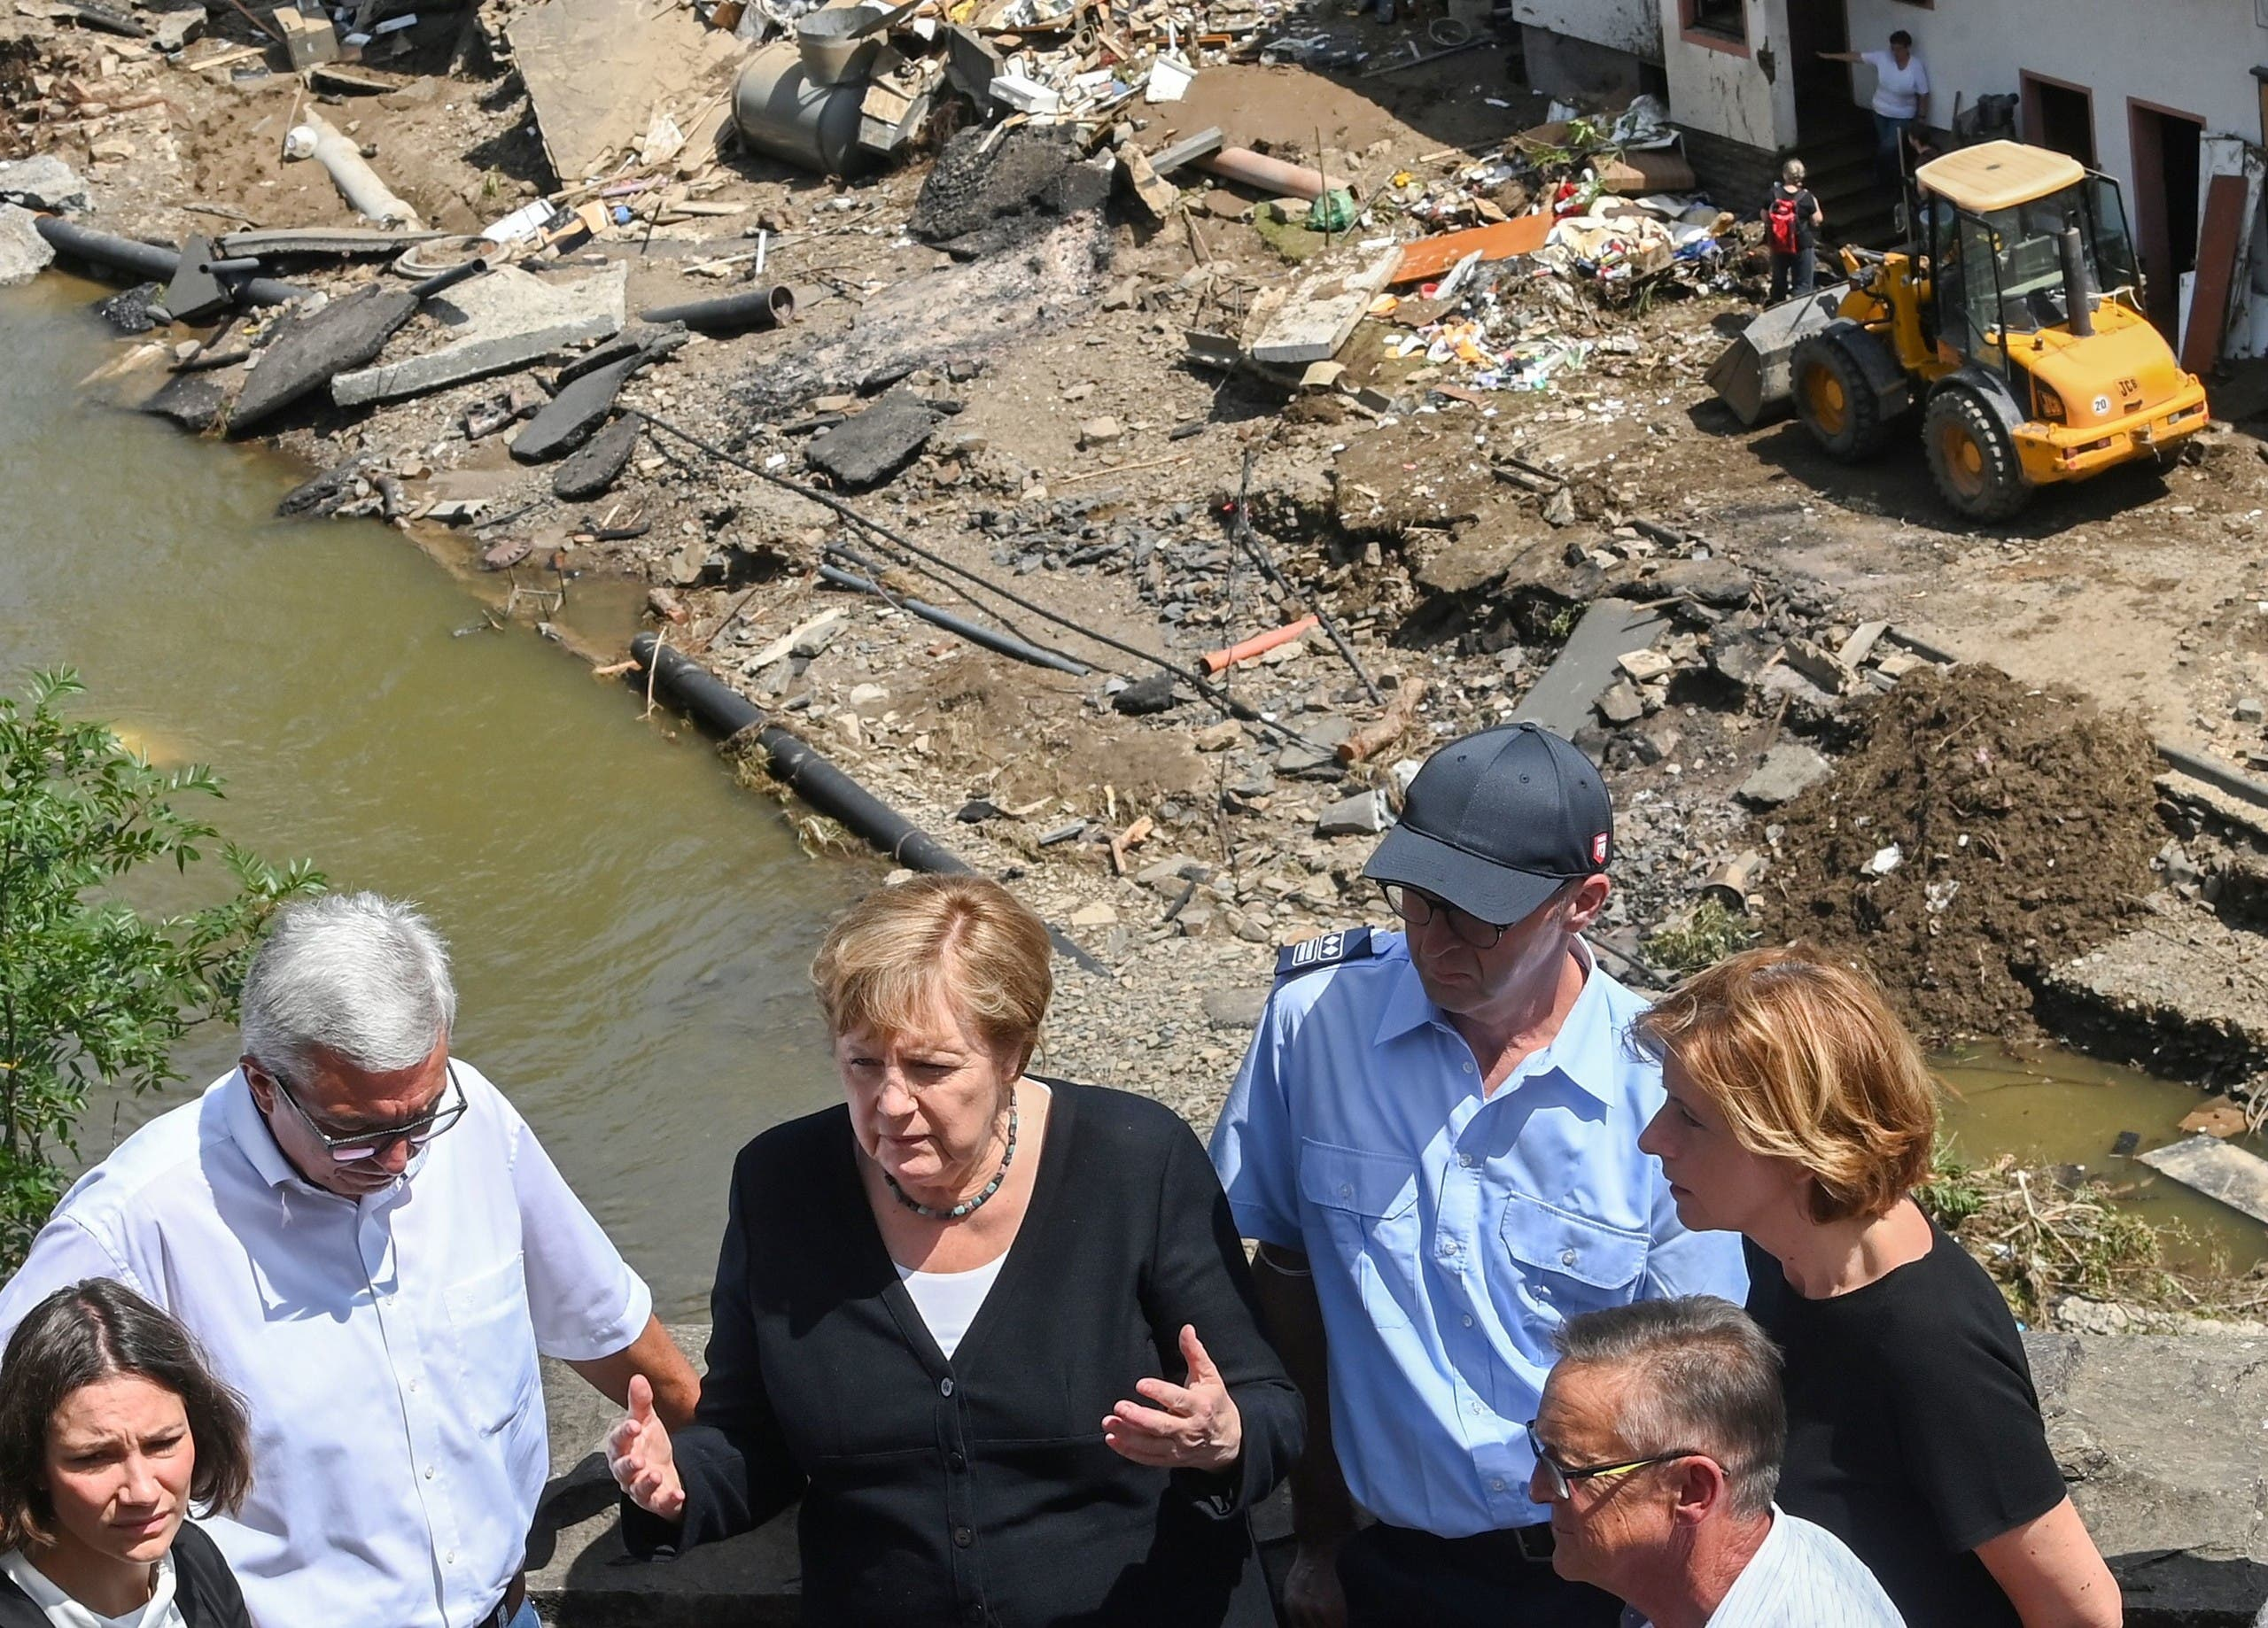 Merkel during her visit to the affected area